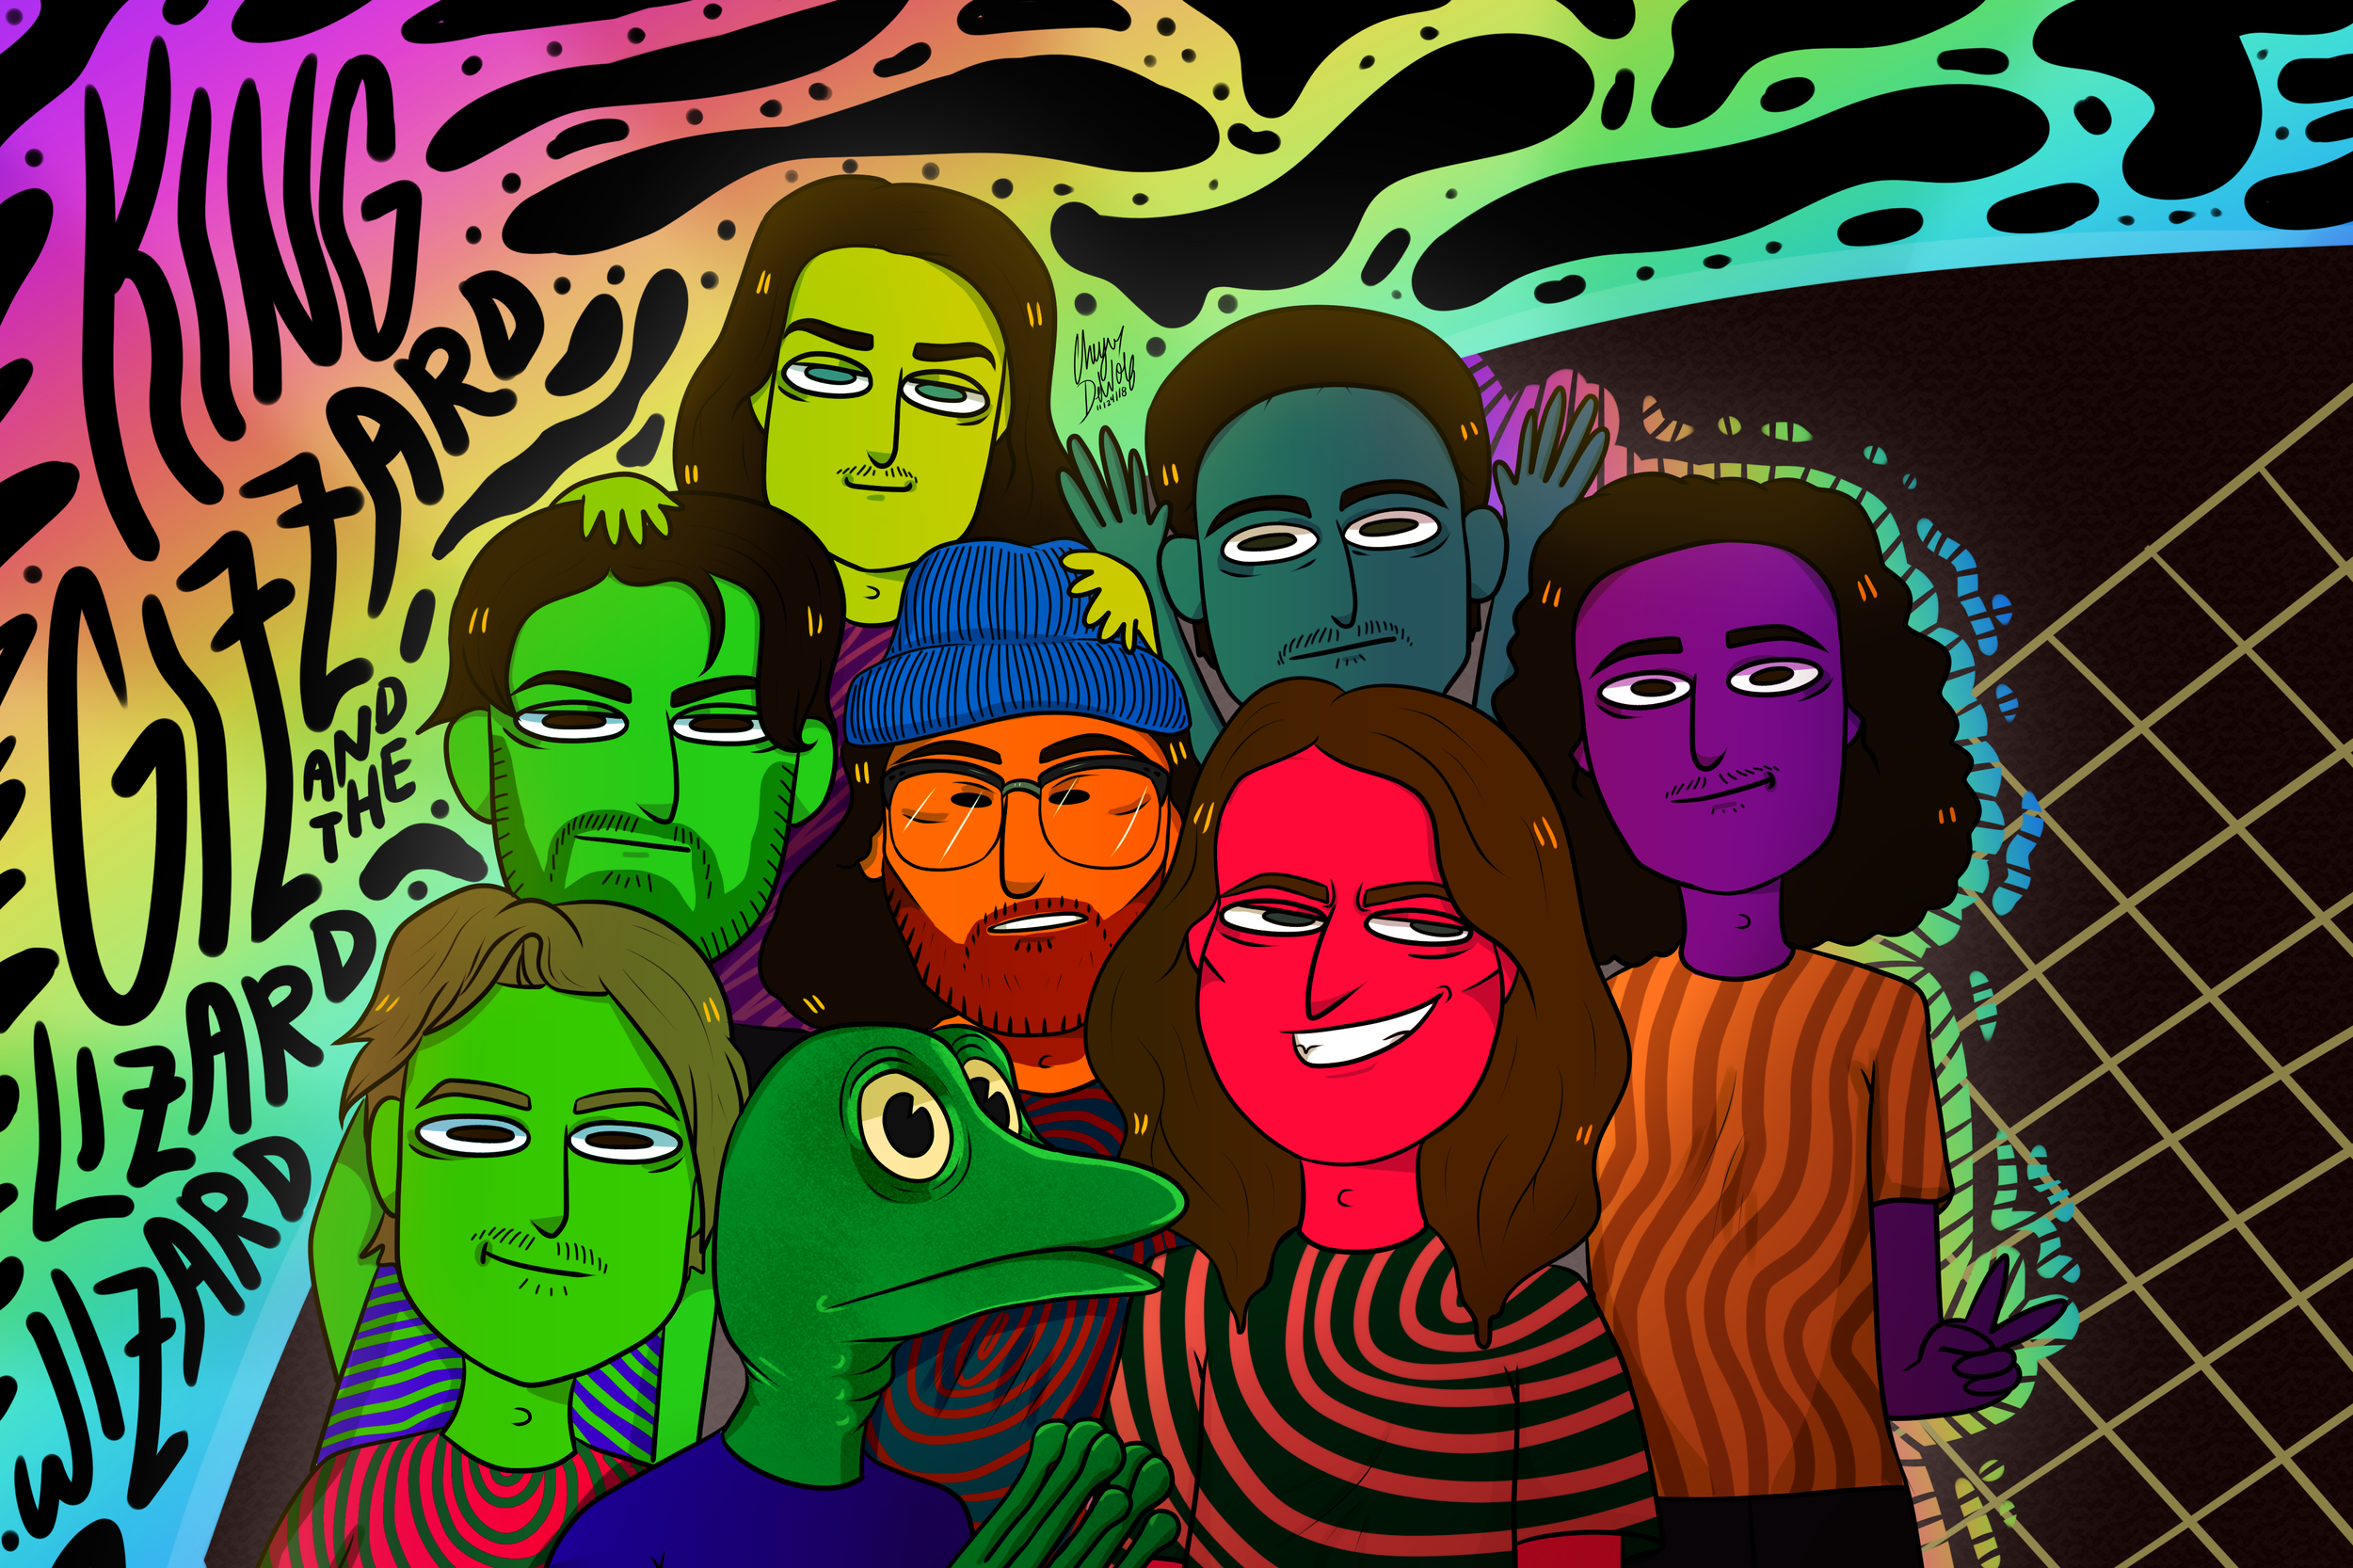 king-gizz-on-some-whack-shit-too-v1.png